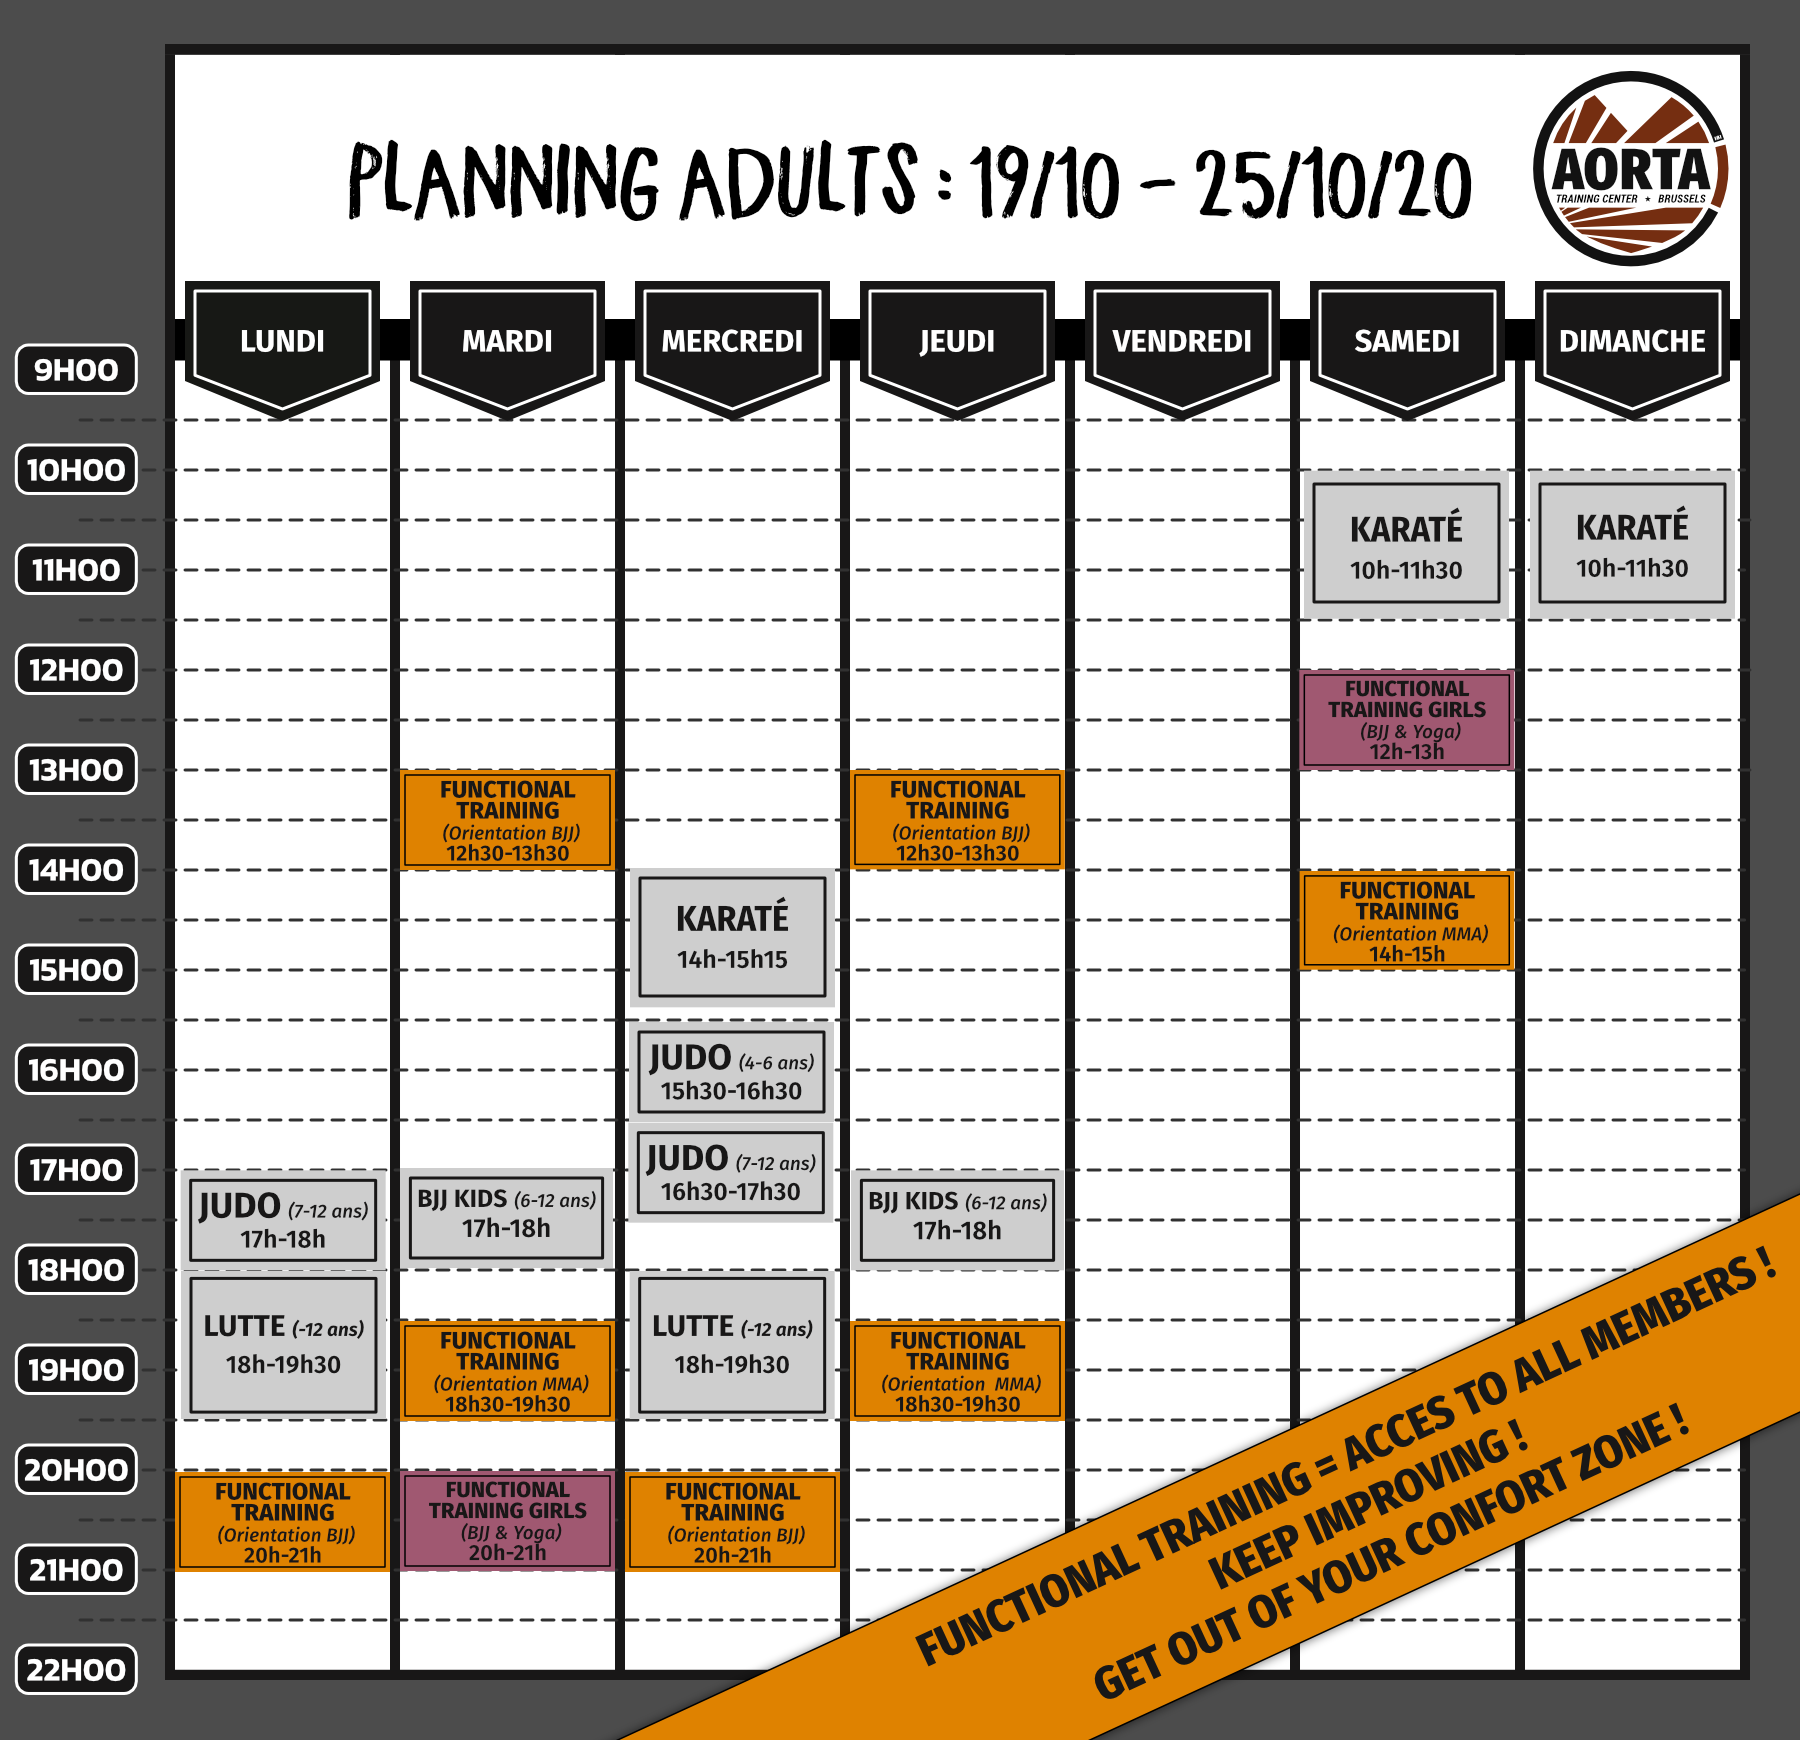 planning adults - special Covid